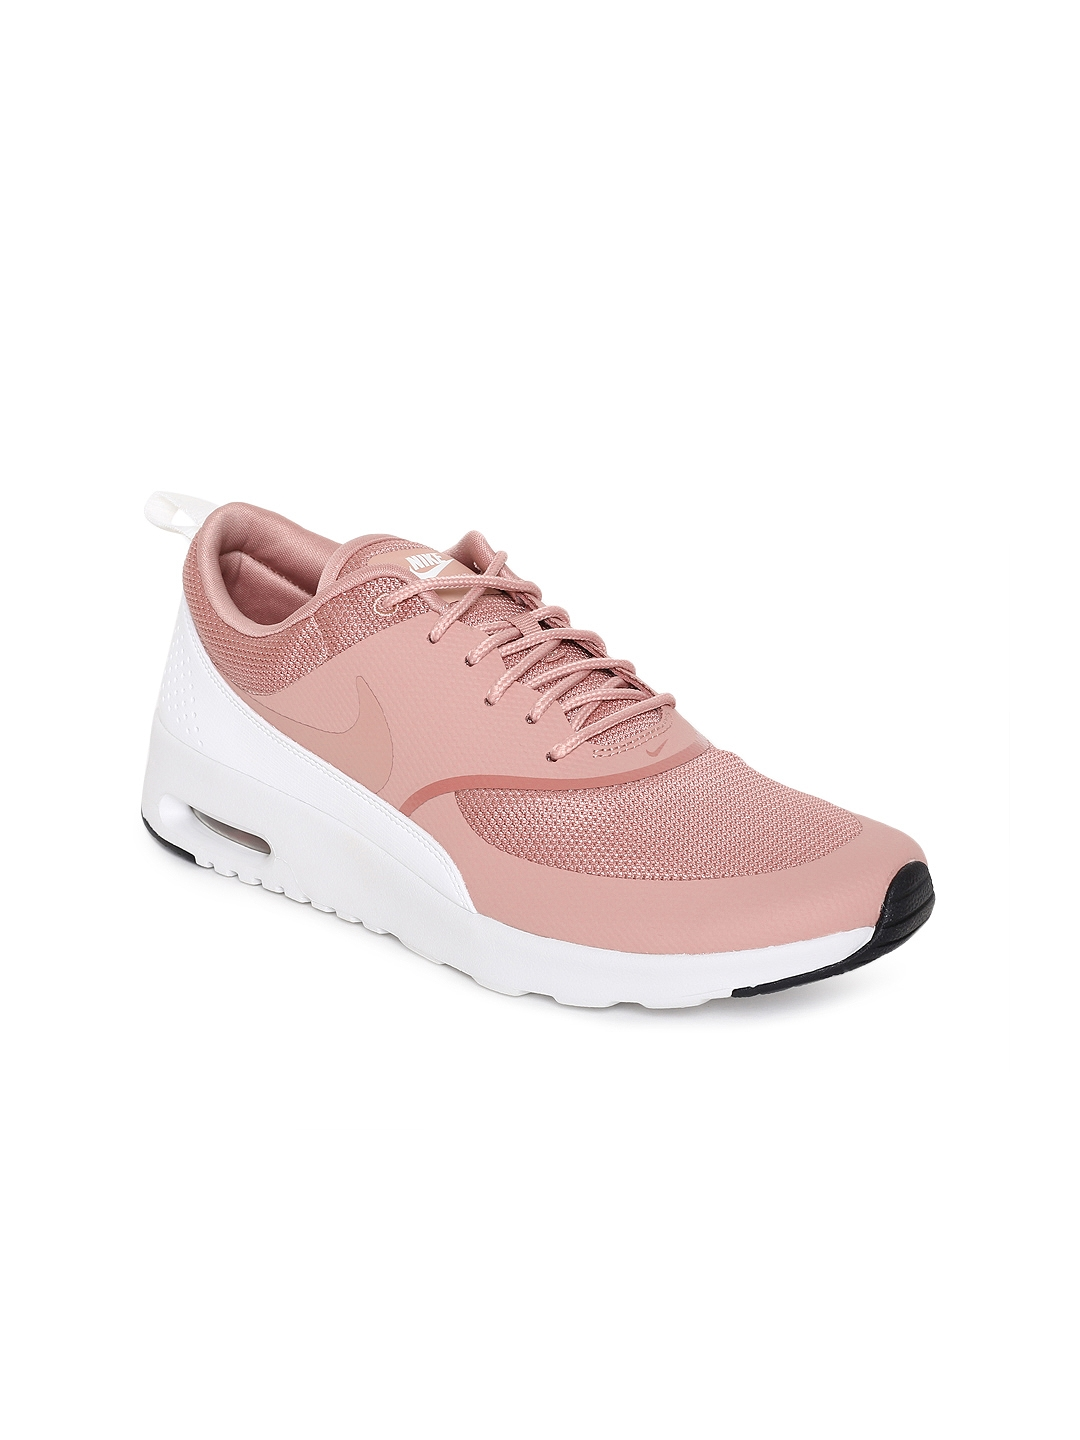 47f8c585e0e16 Buy Nike Women Dusty Pink Air Max Thea Running Shoes - Sports Shoes ...